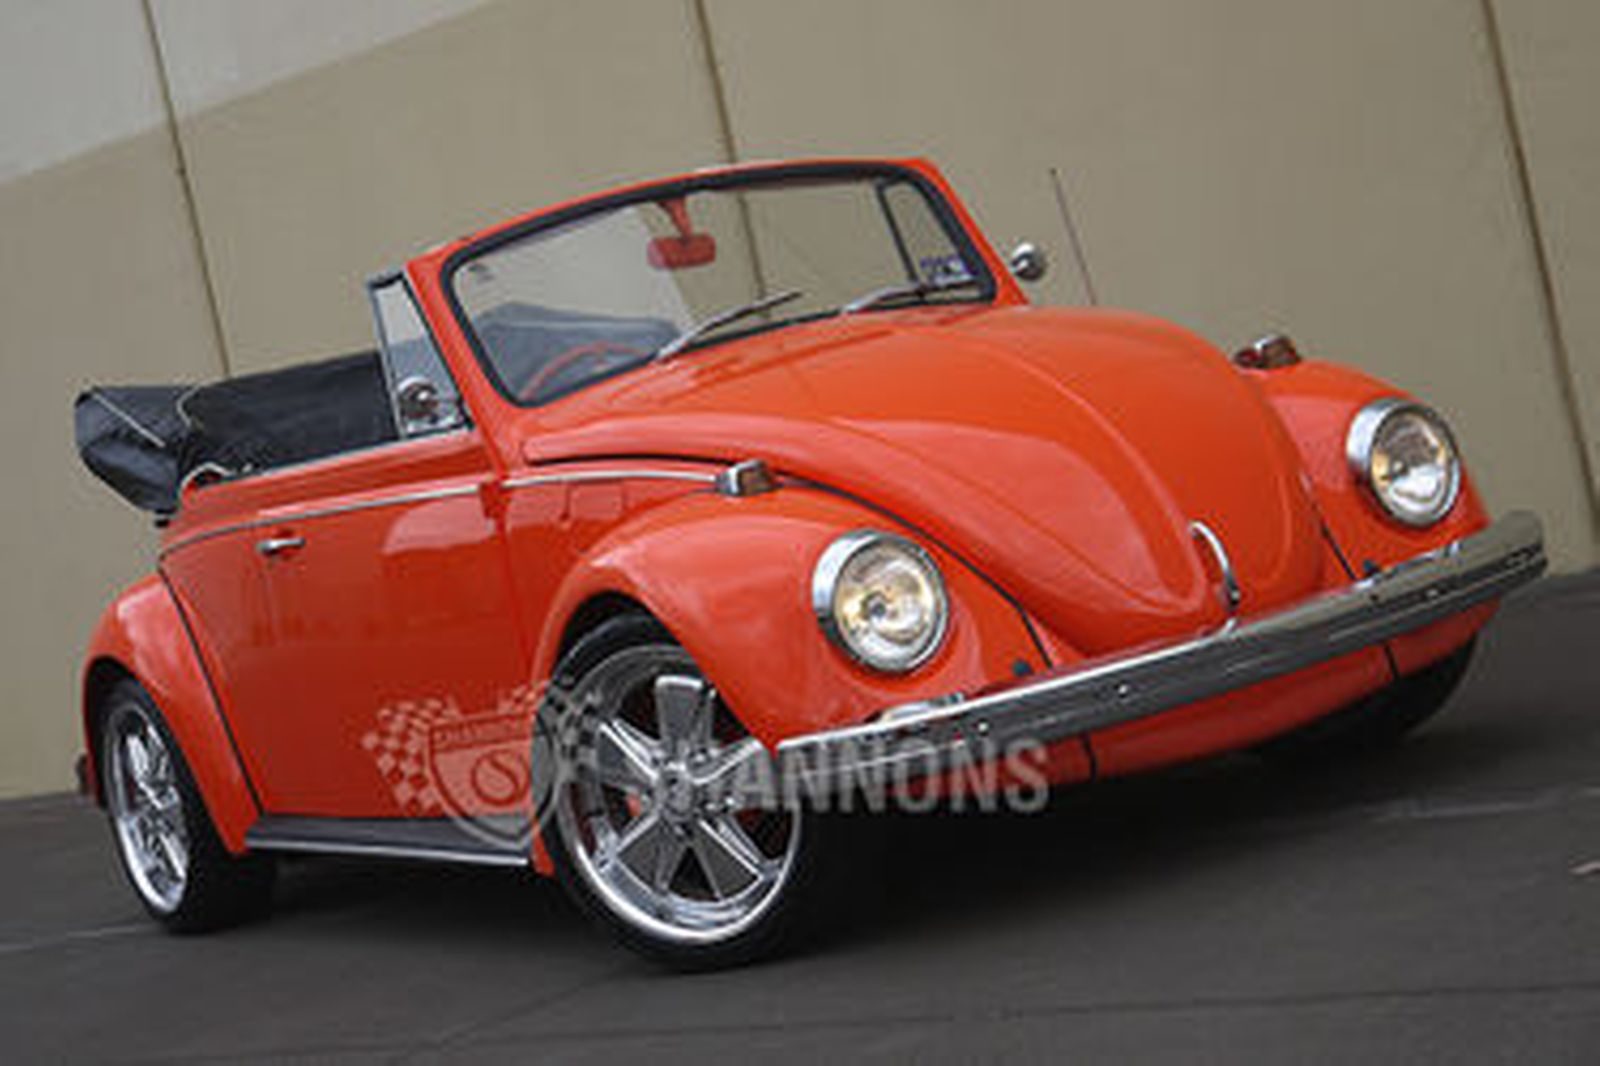 Volkswagen 1500 Beetle 'Karman' Cabriolet Auctions - Lot 6 - Shannons